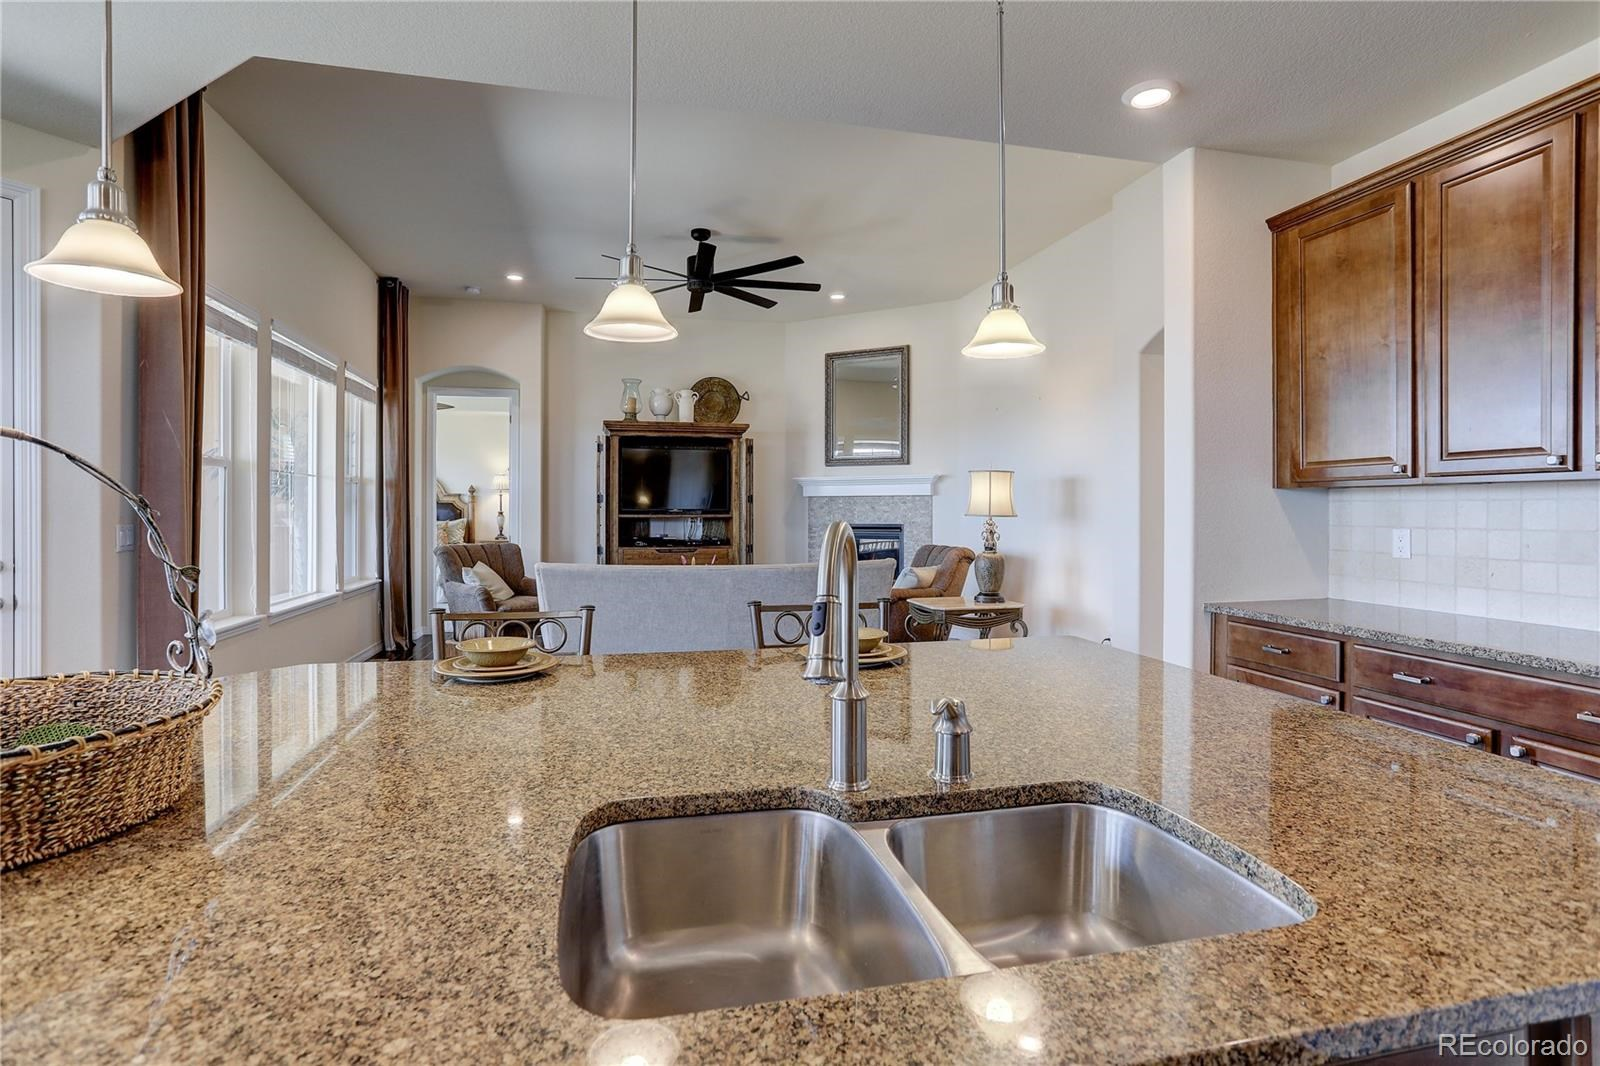 MLS# 8545425 - 13 - 7598 S Country Club Parkway, Aurora, CO 80016